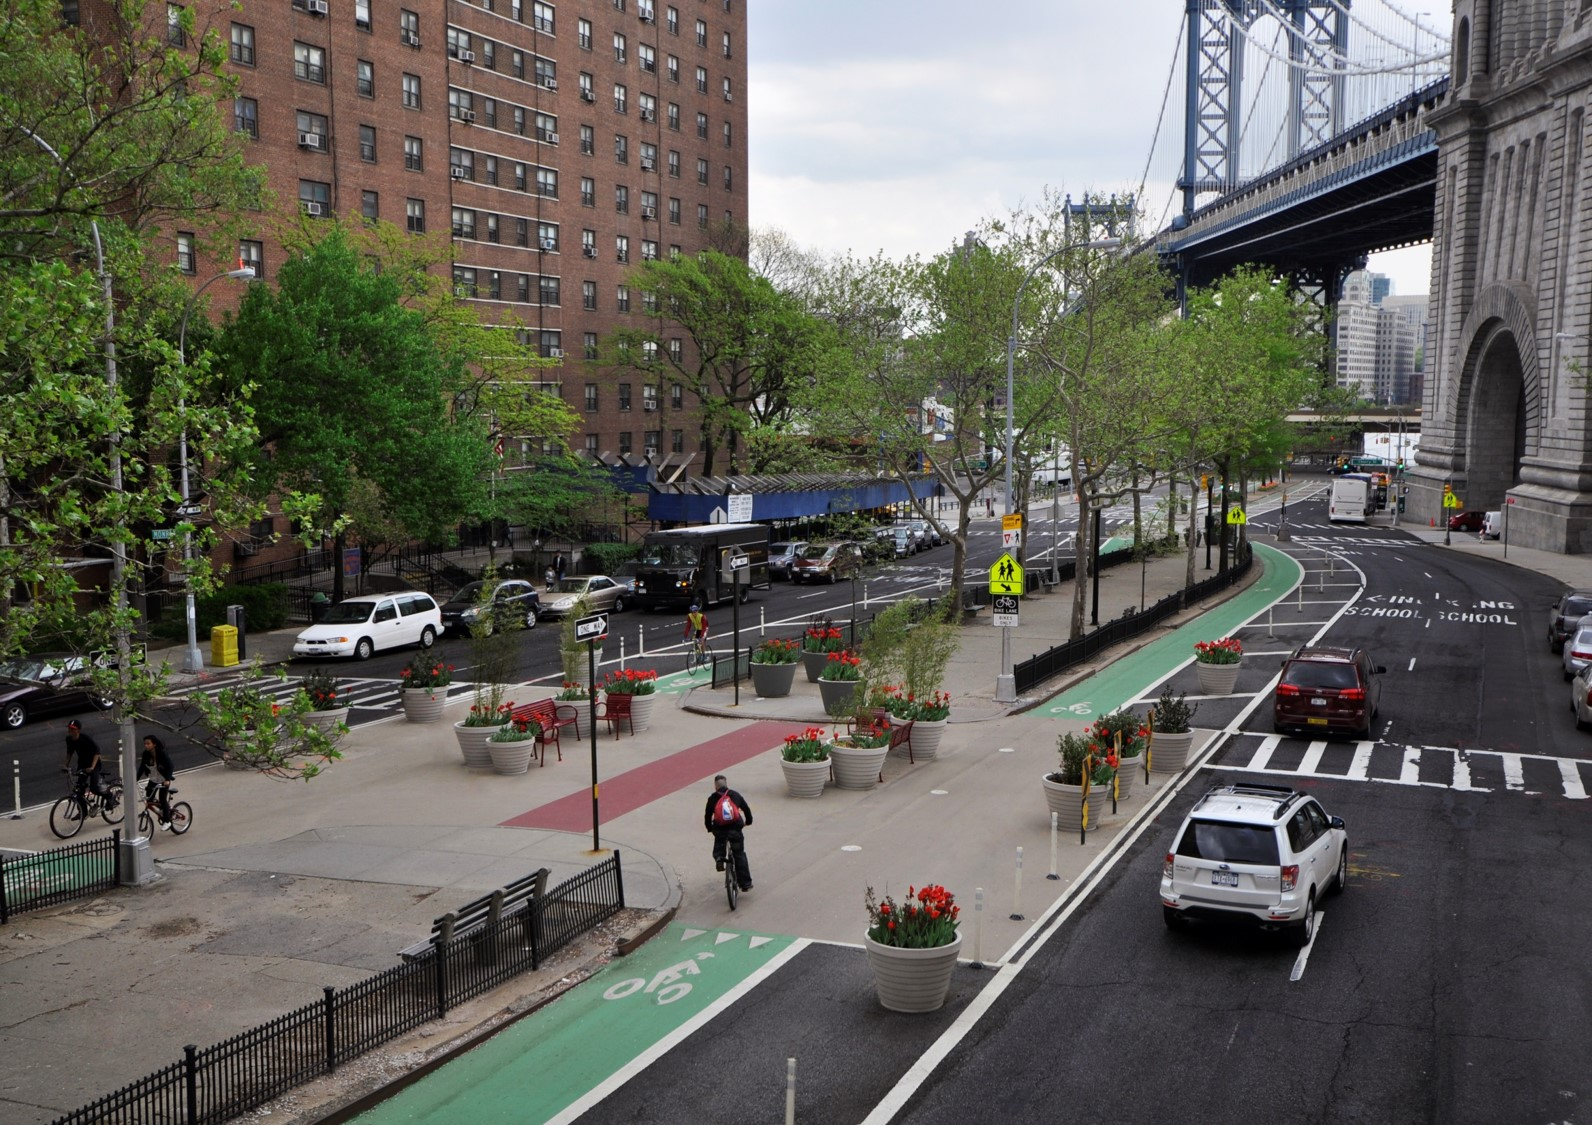 Complete street with bike lanes and sidewalks